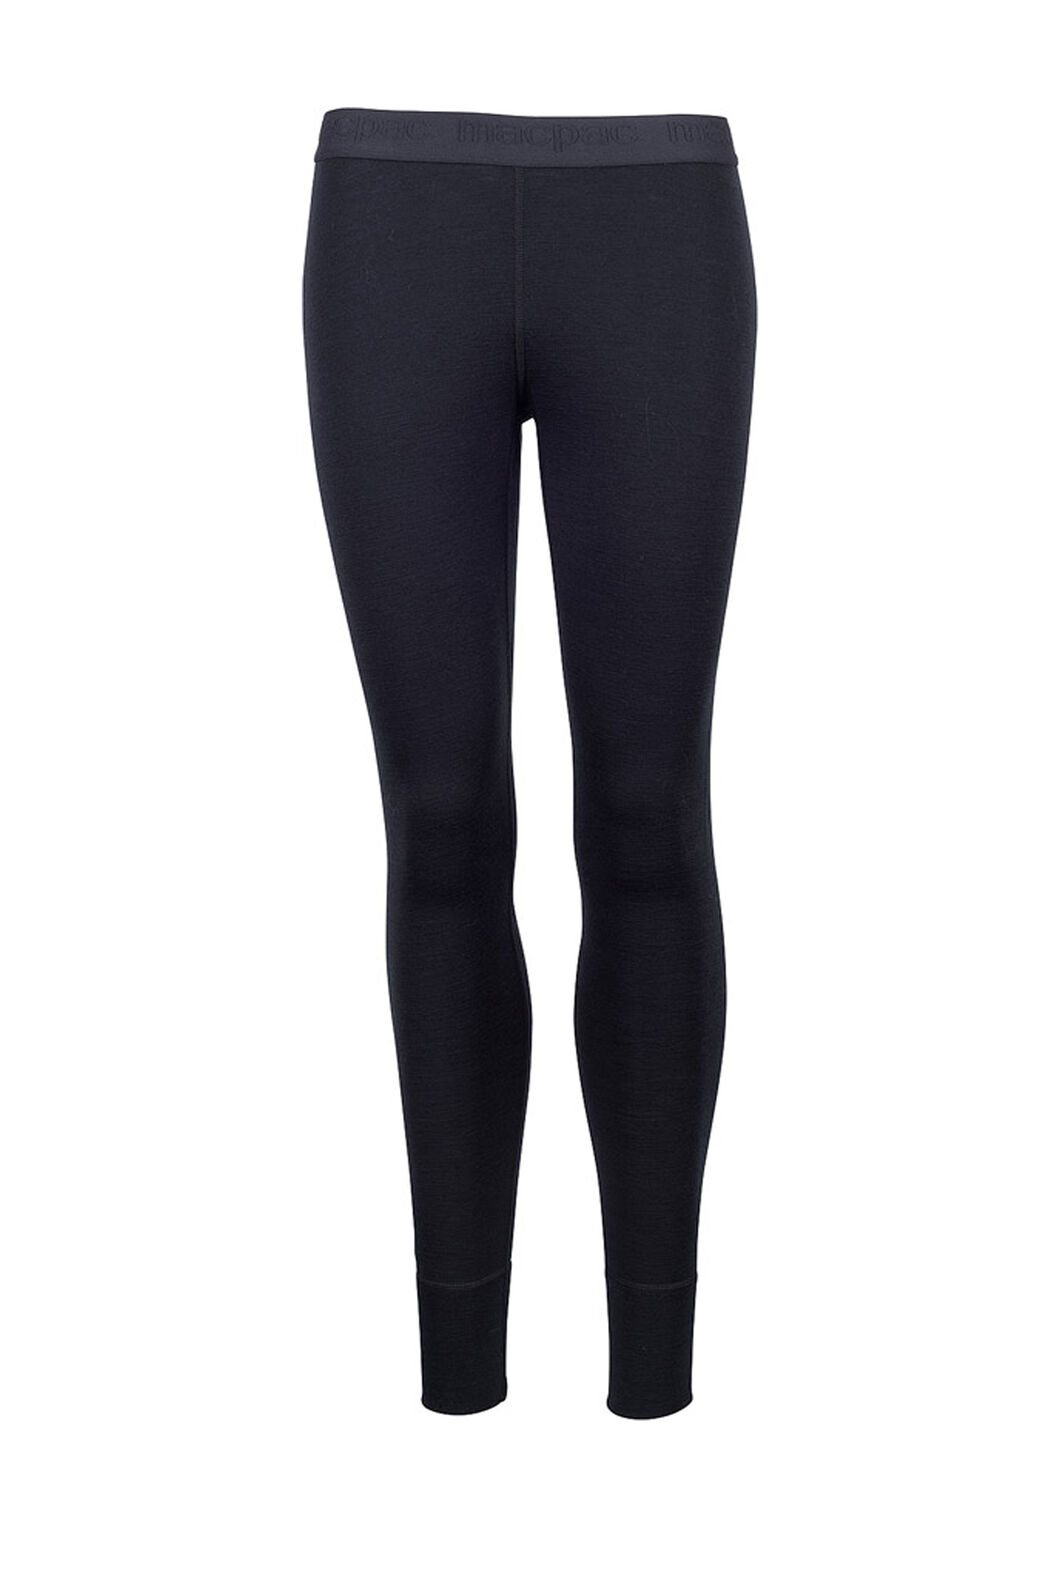 Macpac 220 Merino Long Johns — Women's, Black, hi-res